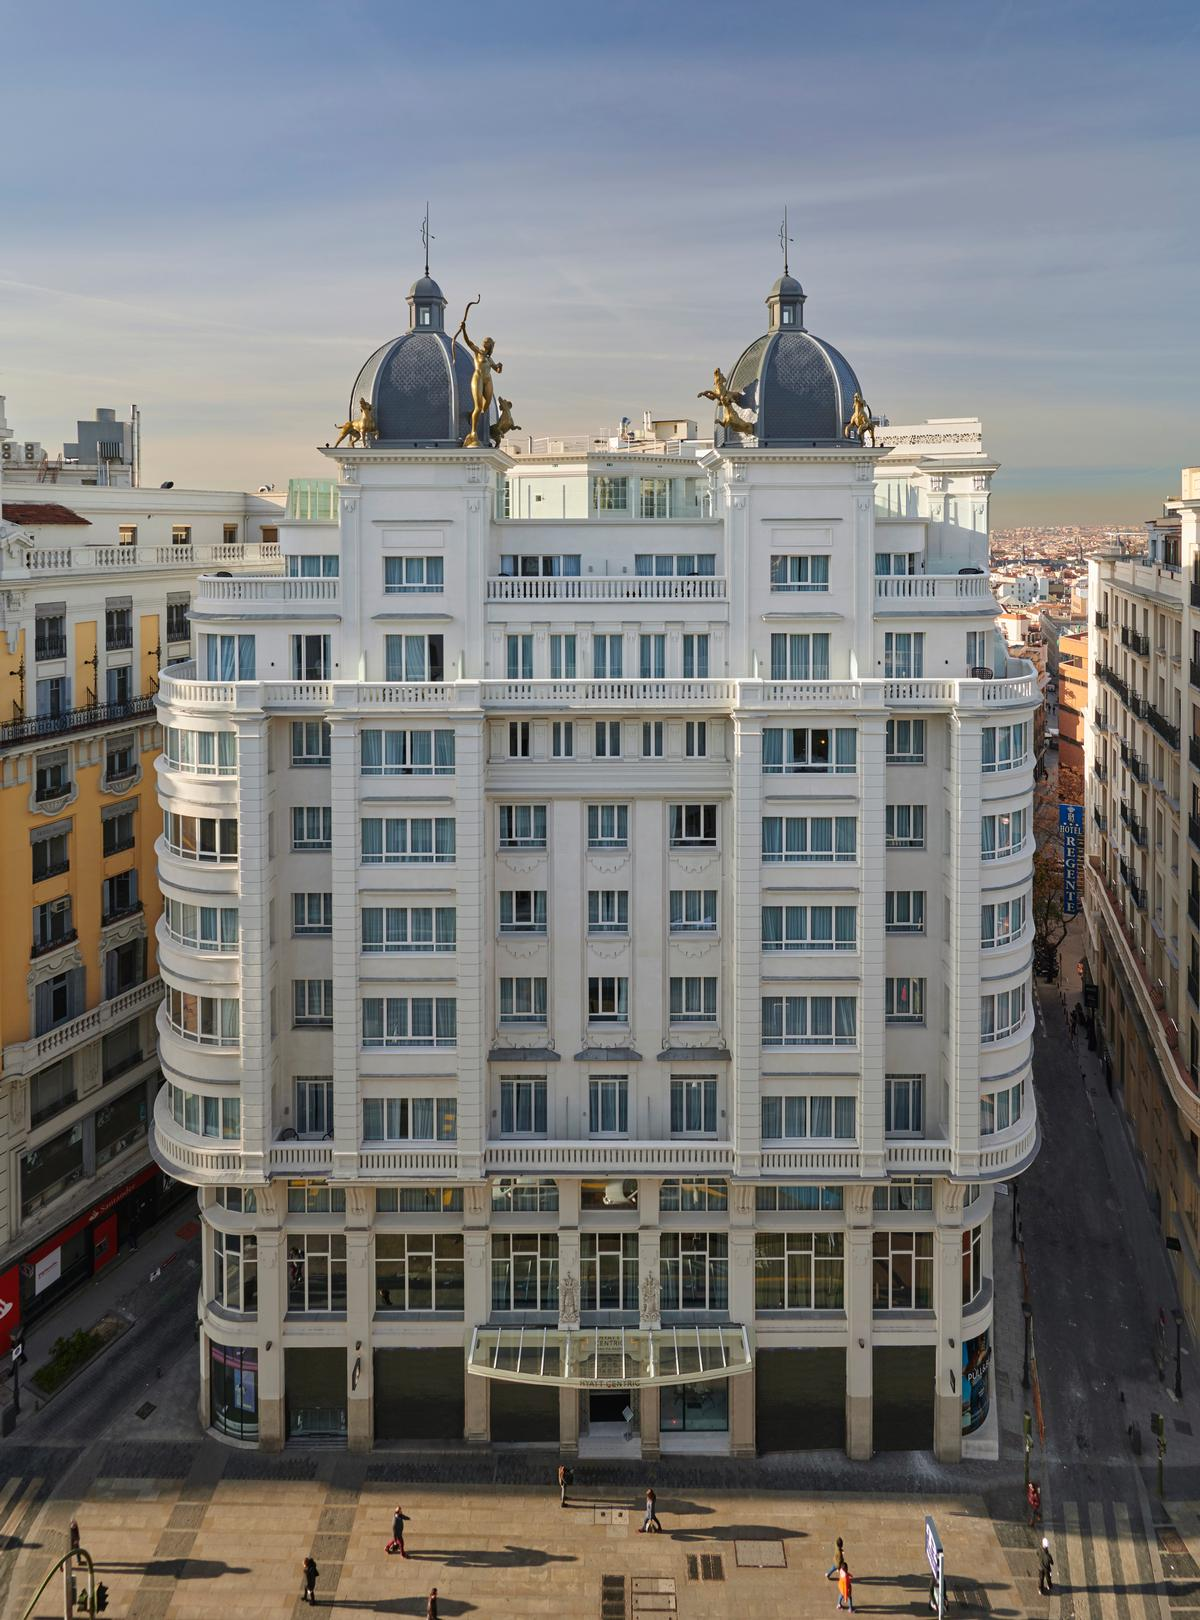 Chebaane and his studio, Blue Sky Hospitality, were tasked with converting the partially listed spaces behind the historic facade of a 1920s-era building on the upscale Gran Via shopping street / Blue Sky Hospitality